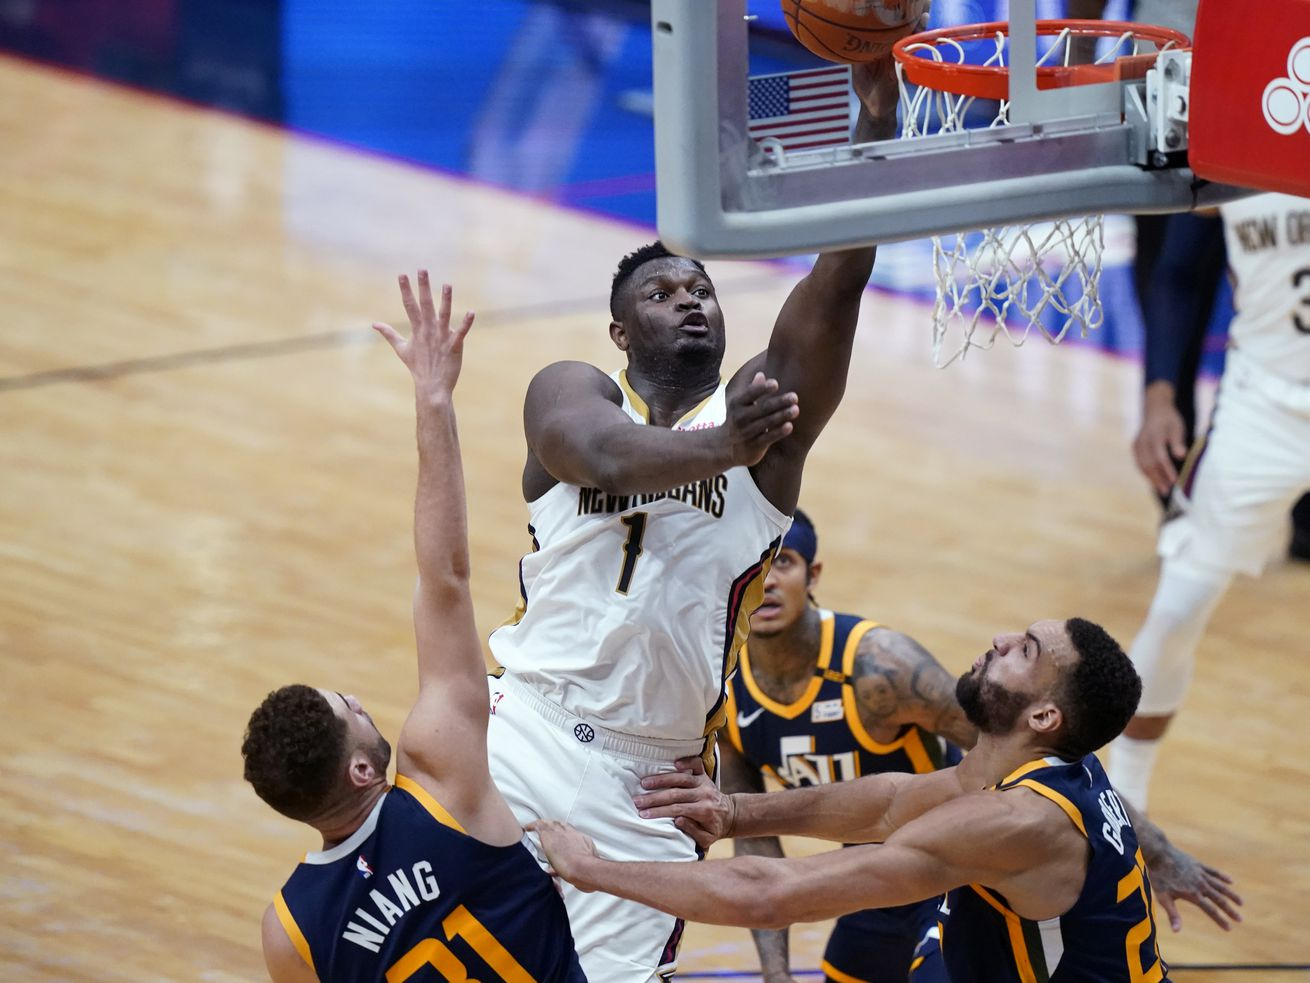 Instant analysis: Jazz come up short against Zion Williamson and the Pelicans